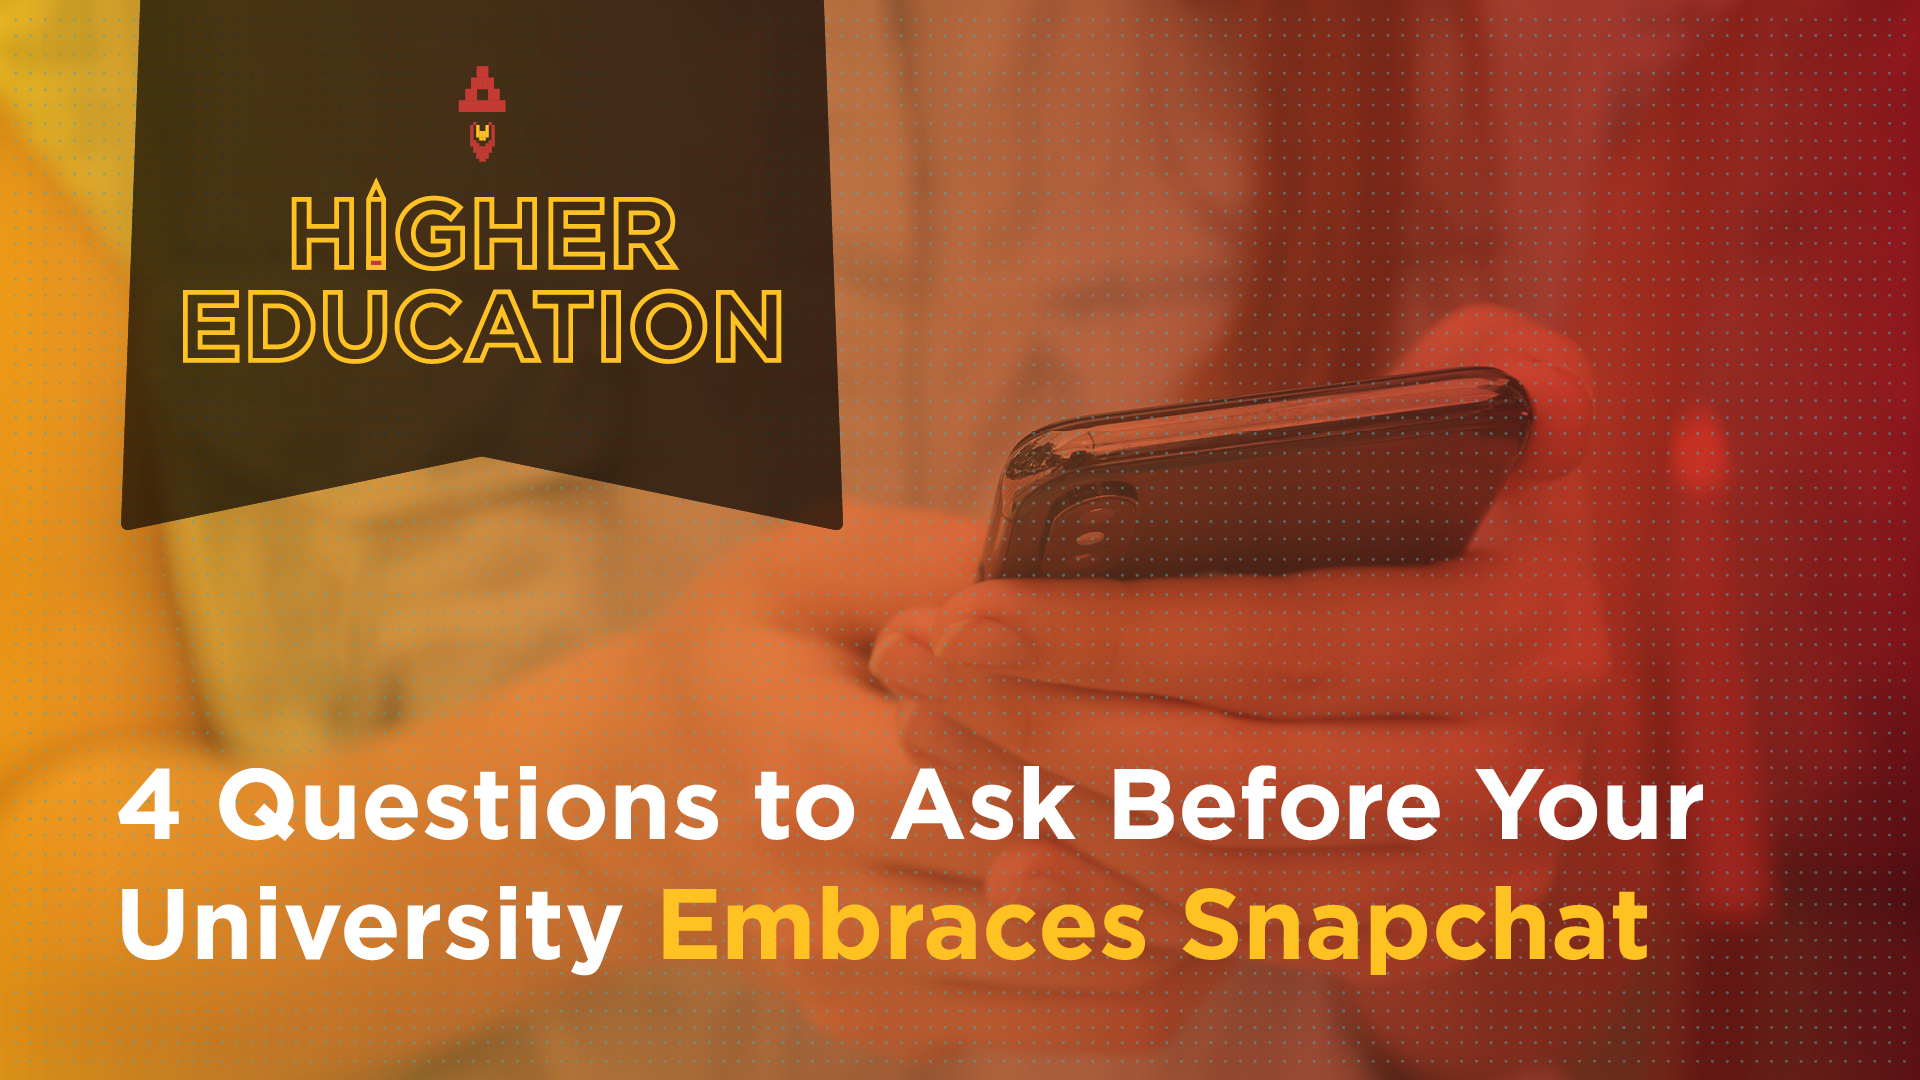 4 Questions to Ask Before Your University Embraces Snapchat Featured Image